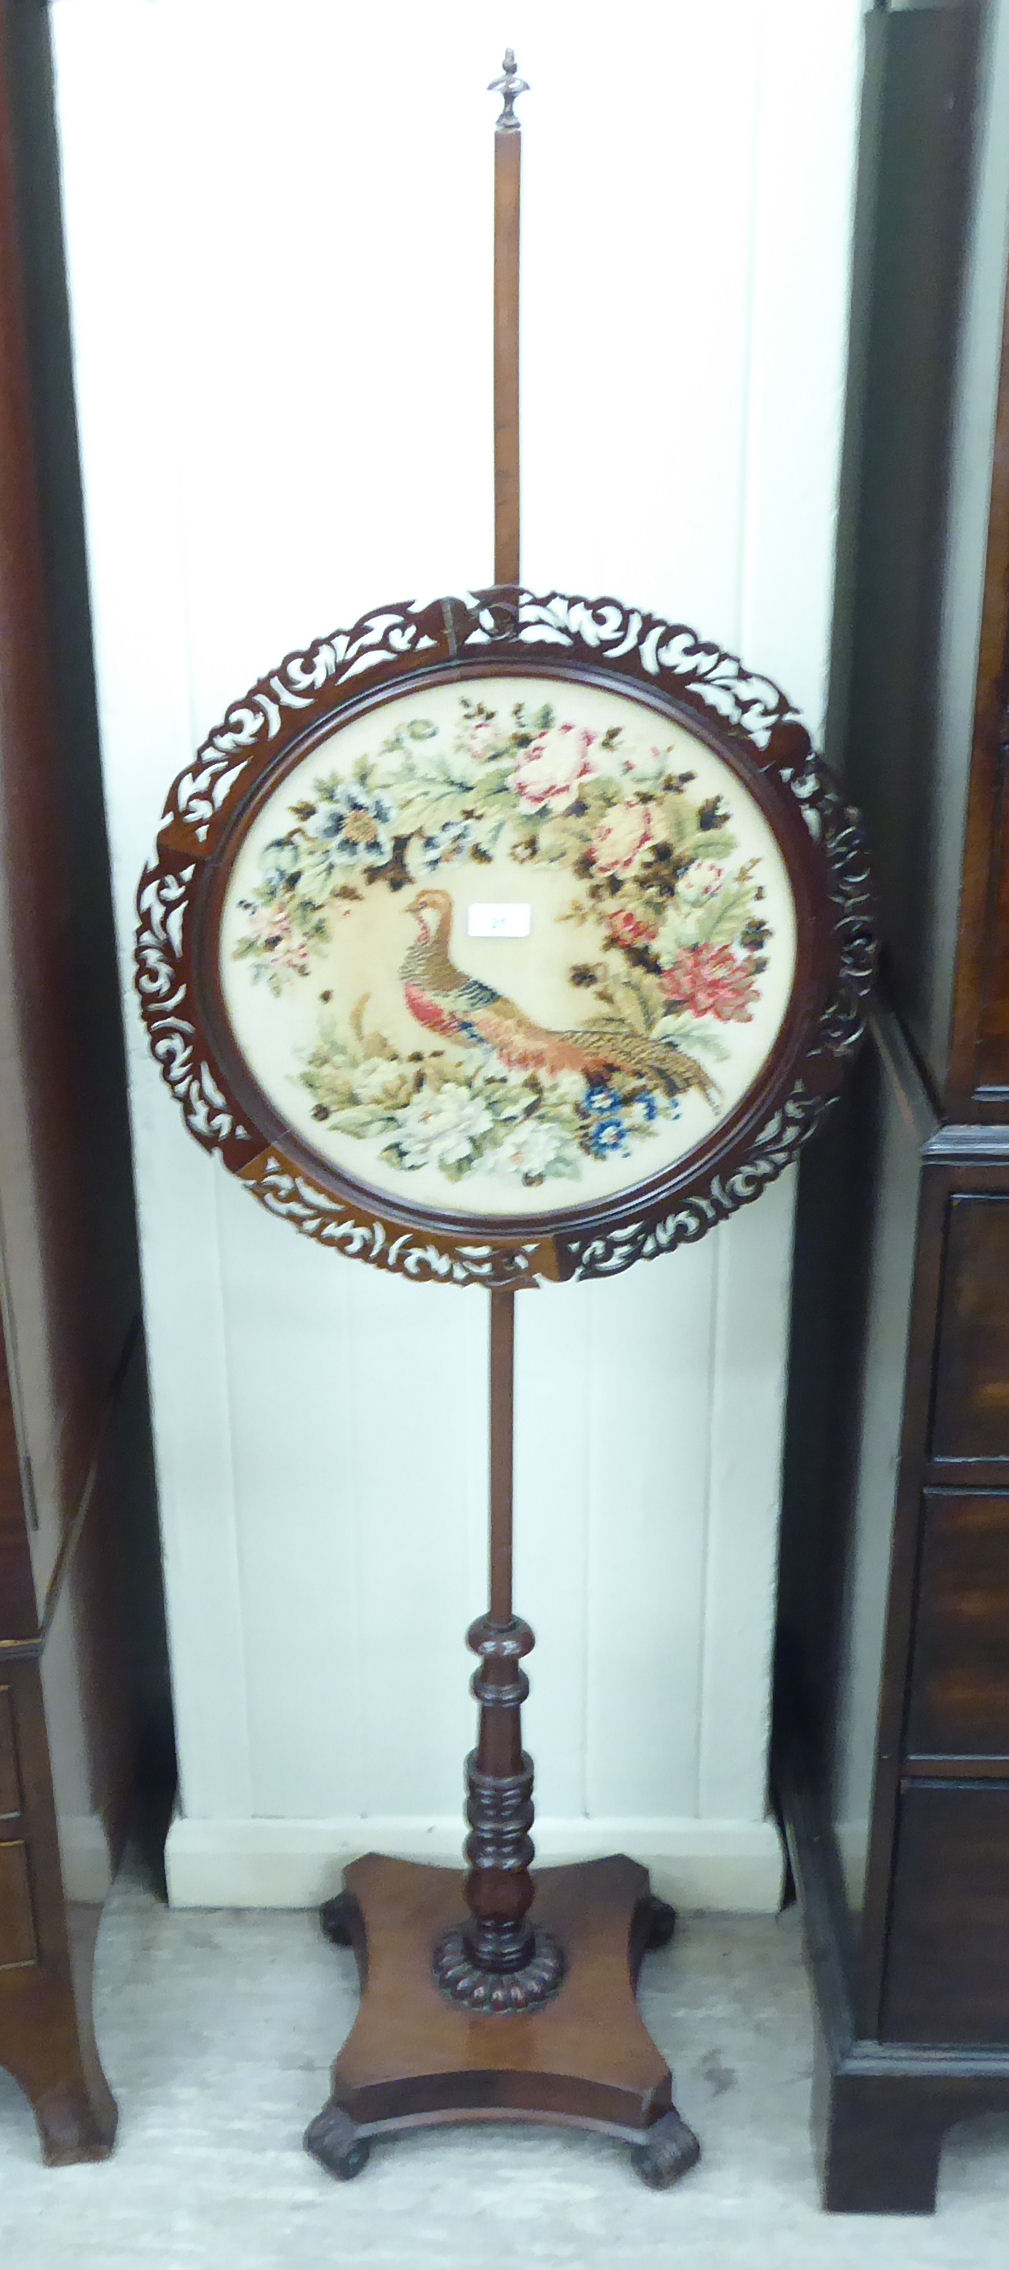 Lot 31 - A William IV mahogany polescreen, set with a peacock and floral embroidered panel,